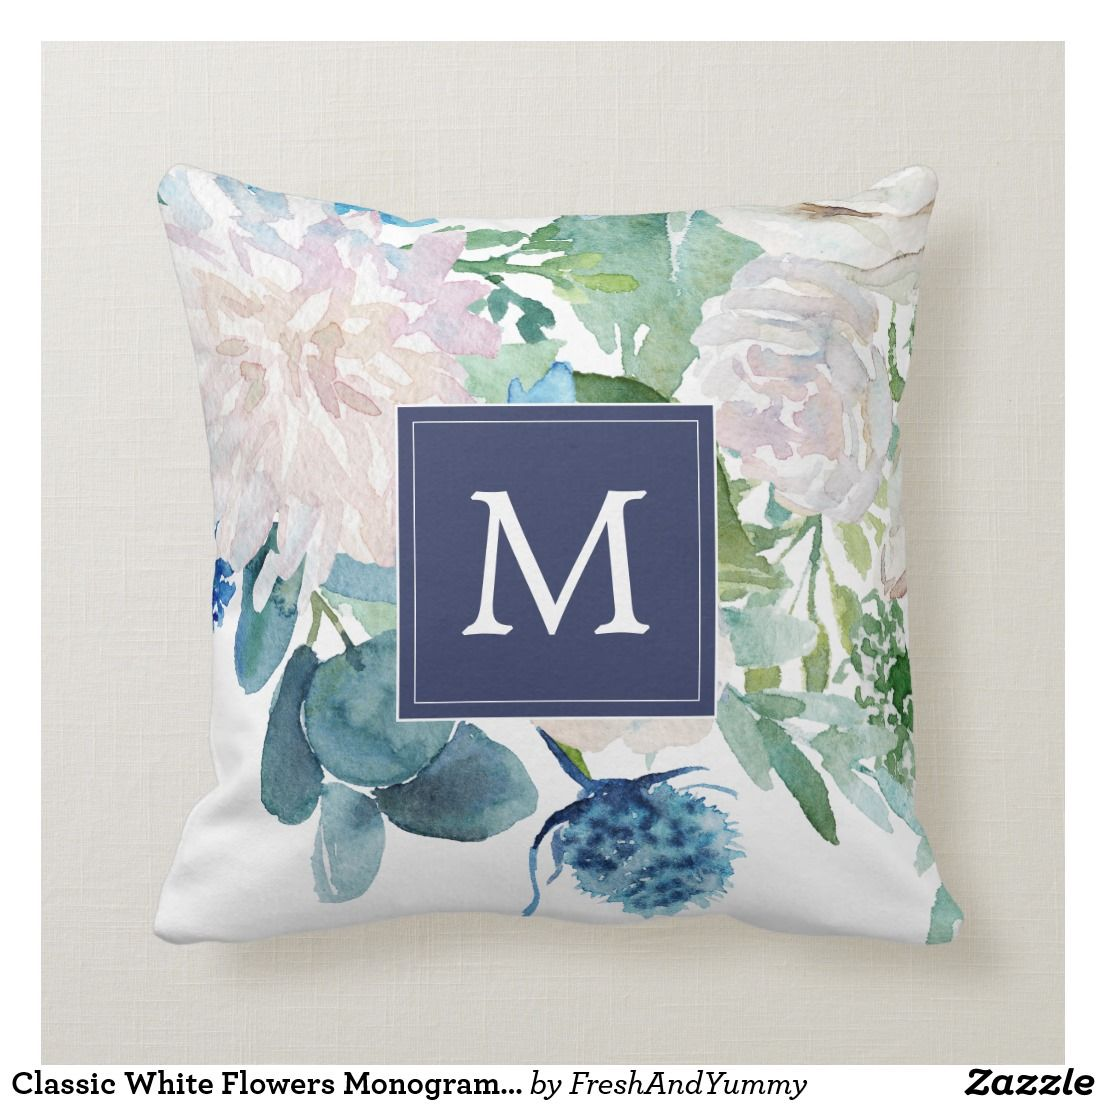 Classic White Flowers Monogrammed Throw Pillow This Classic White